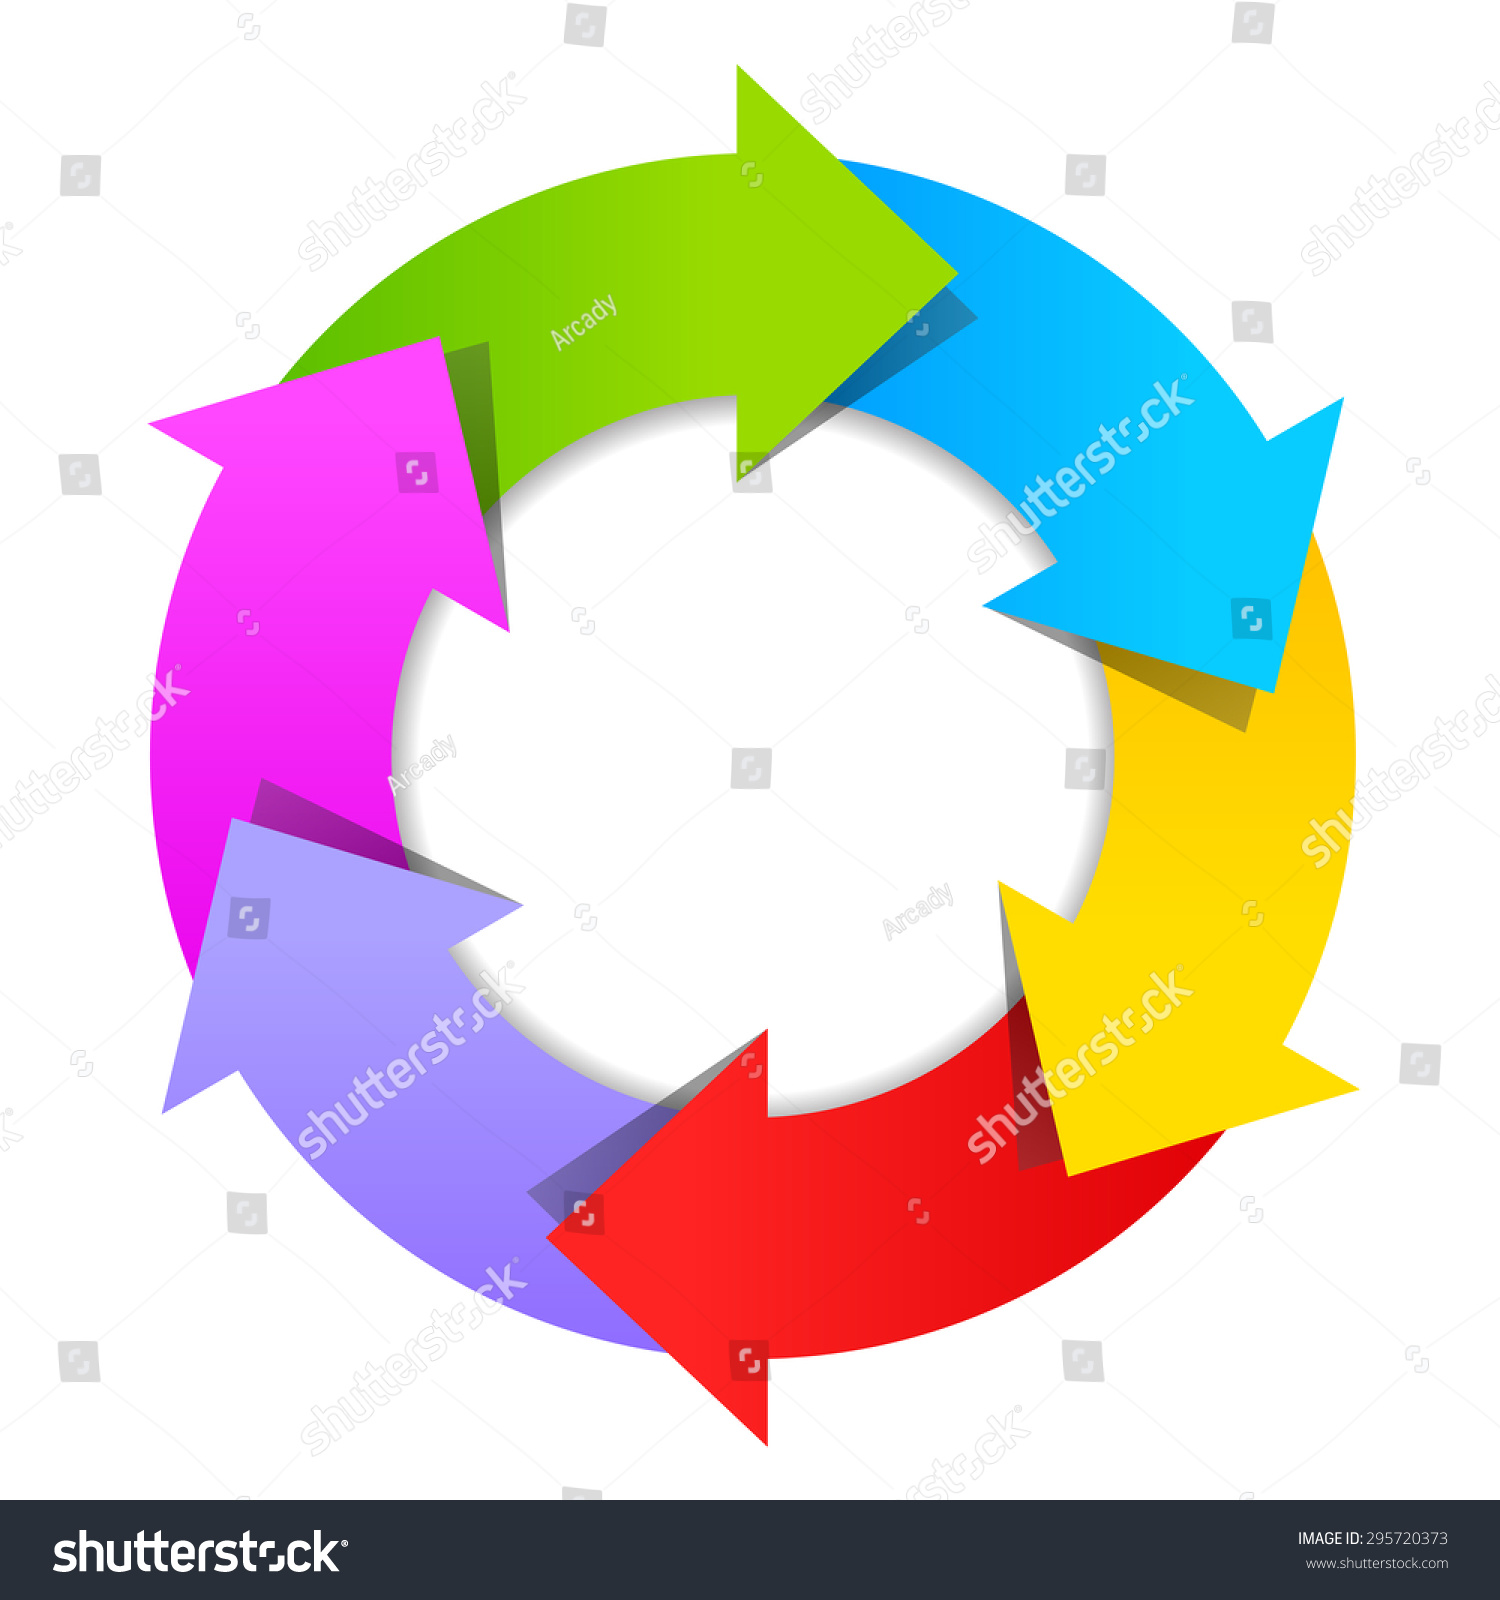 6 part arrow wheel diagram stock vector 2018 295720373 shutterstock 6 part arrow wheel diagram ccuart Images